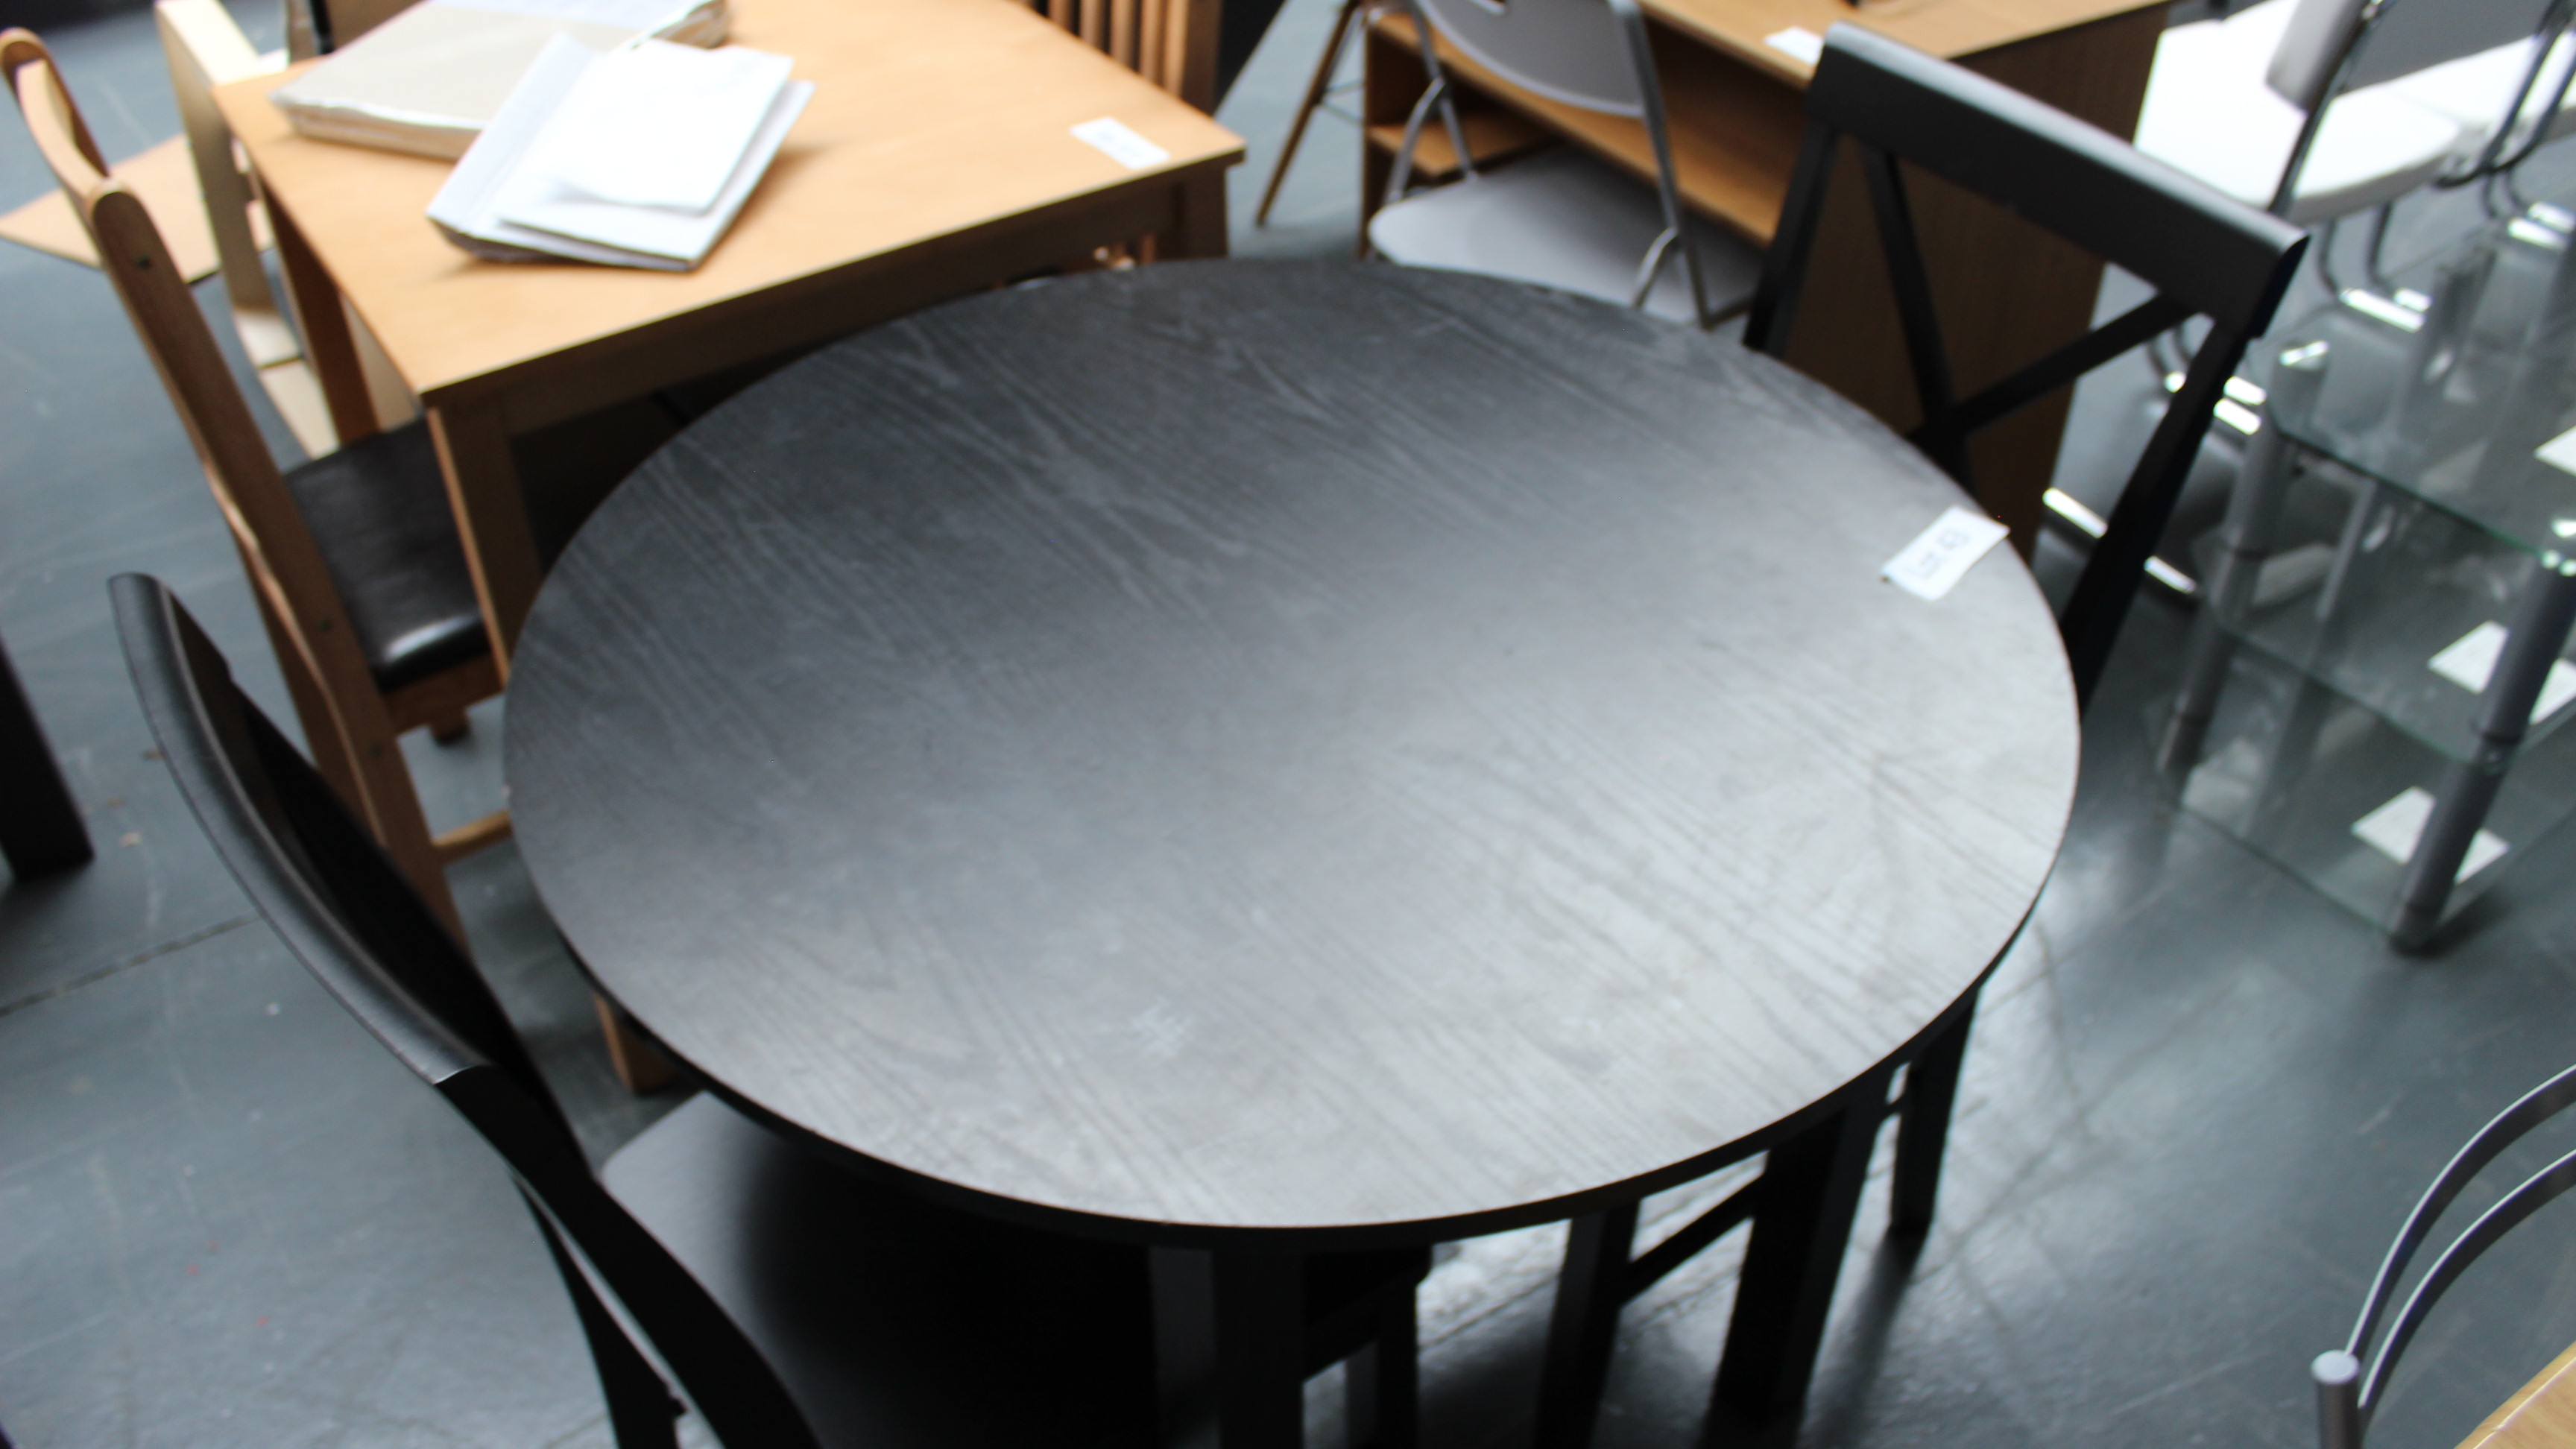 Lot 43 - Black Dining Table & 4 Chairs. Customer Returns